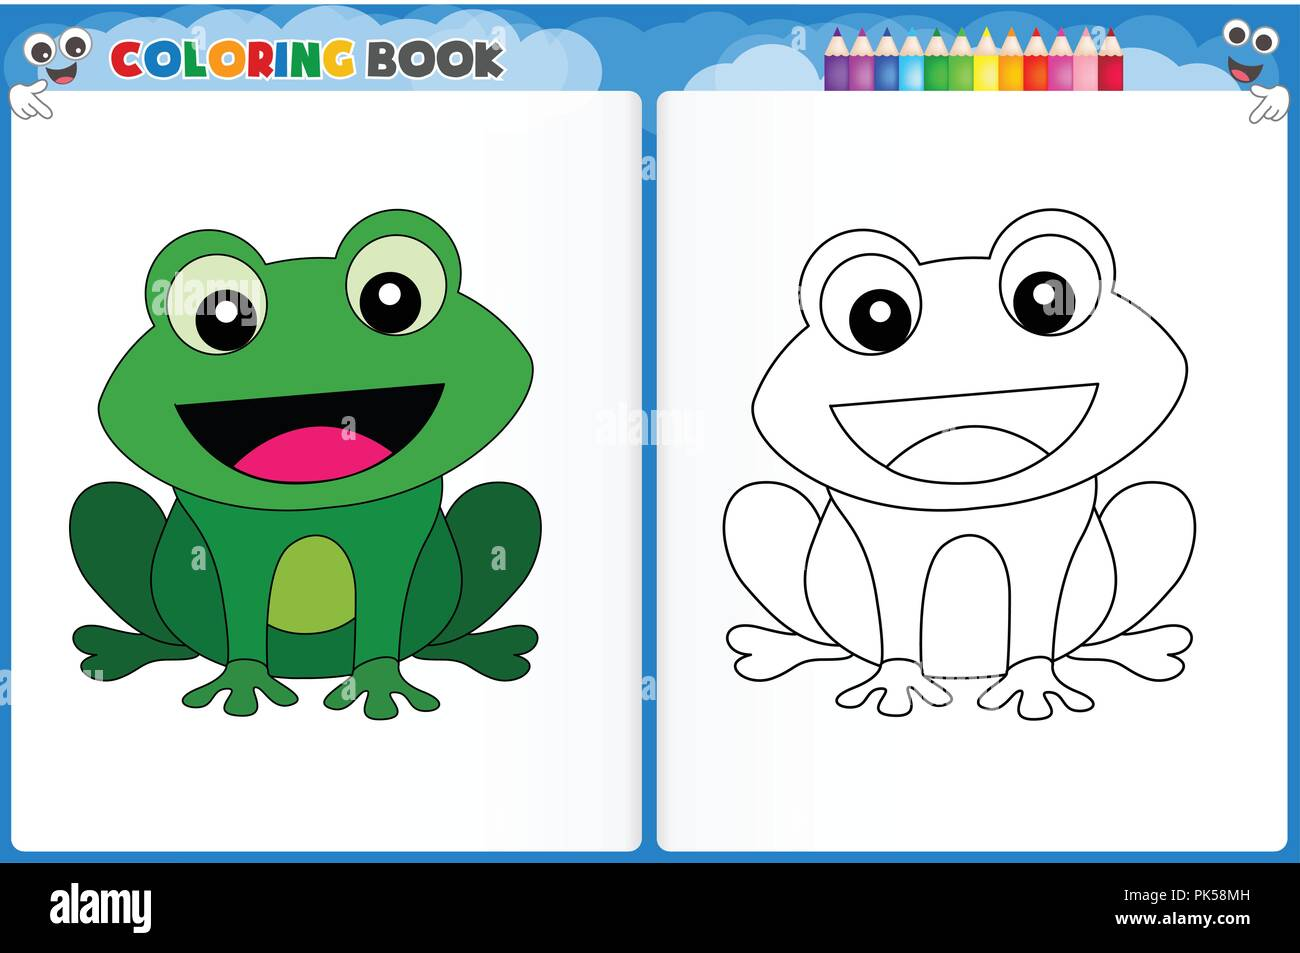 15 frog coloring pages - Print Color Craft | 953x1300